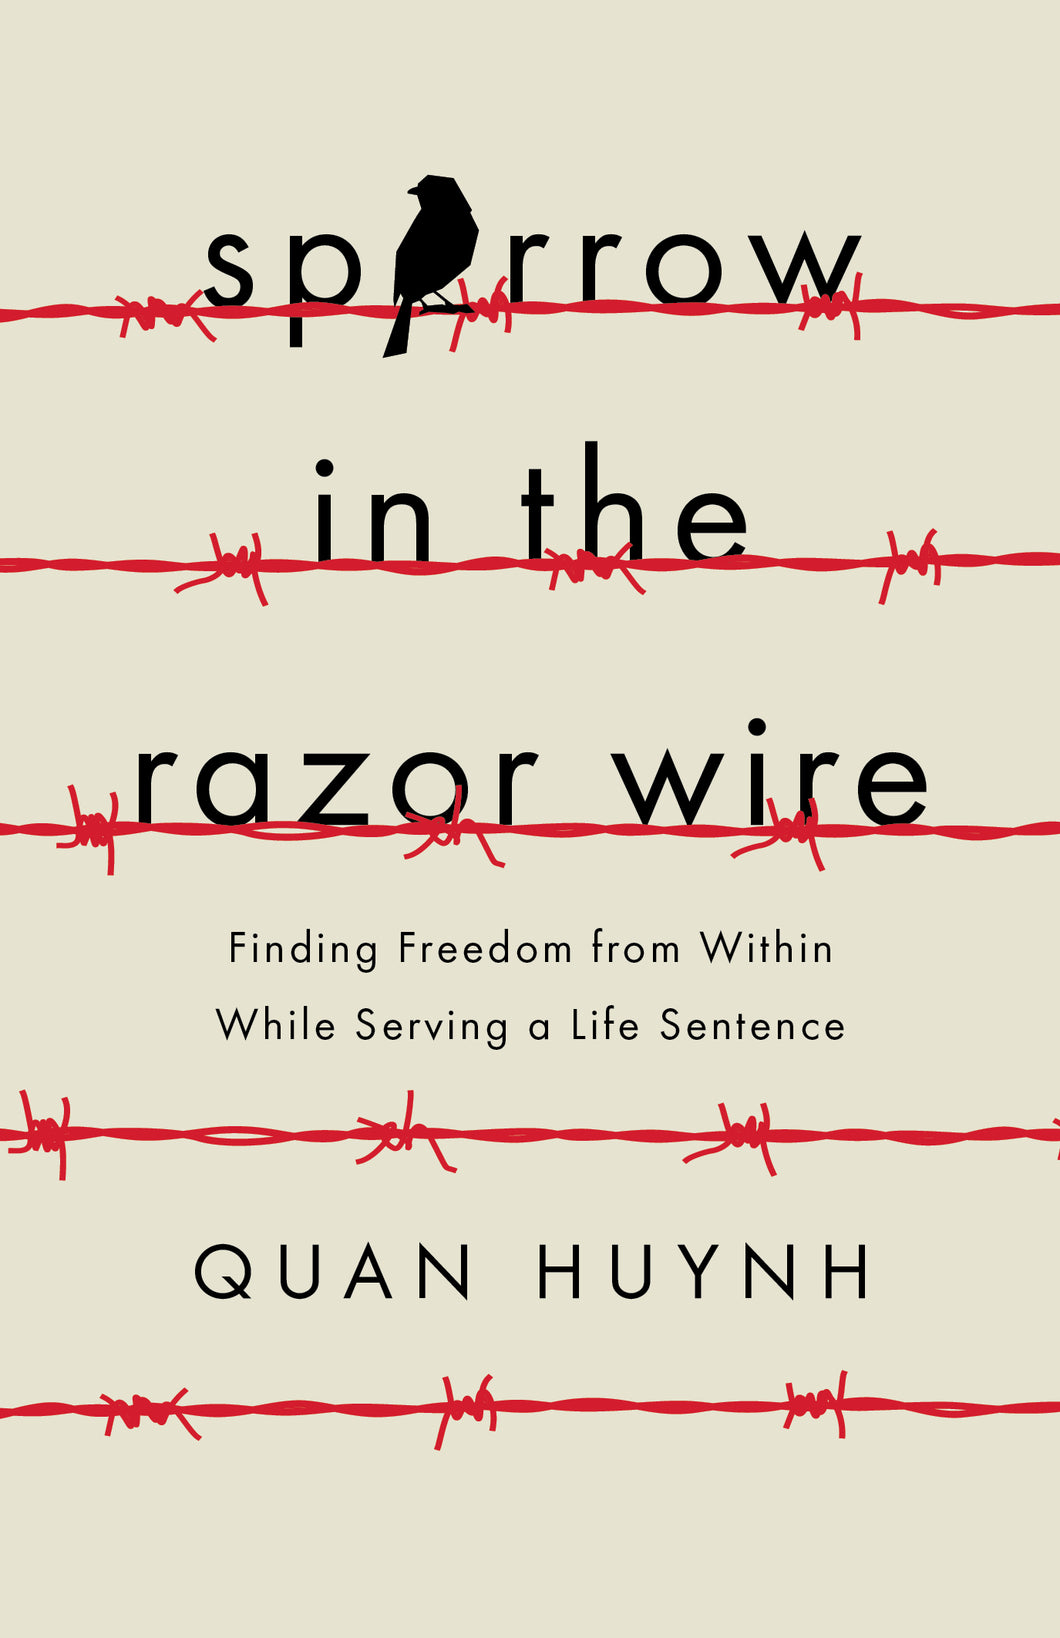 Sparrow in the Razor Wire by Quan Huynh [BUY 10+ GIVE 10+]